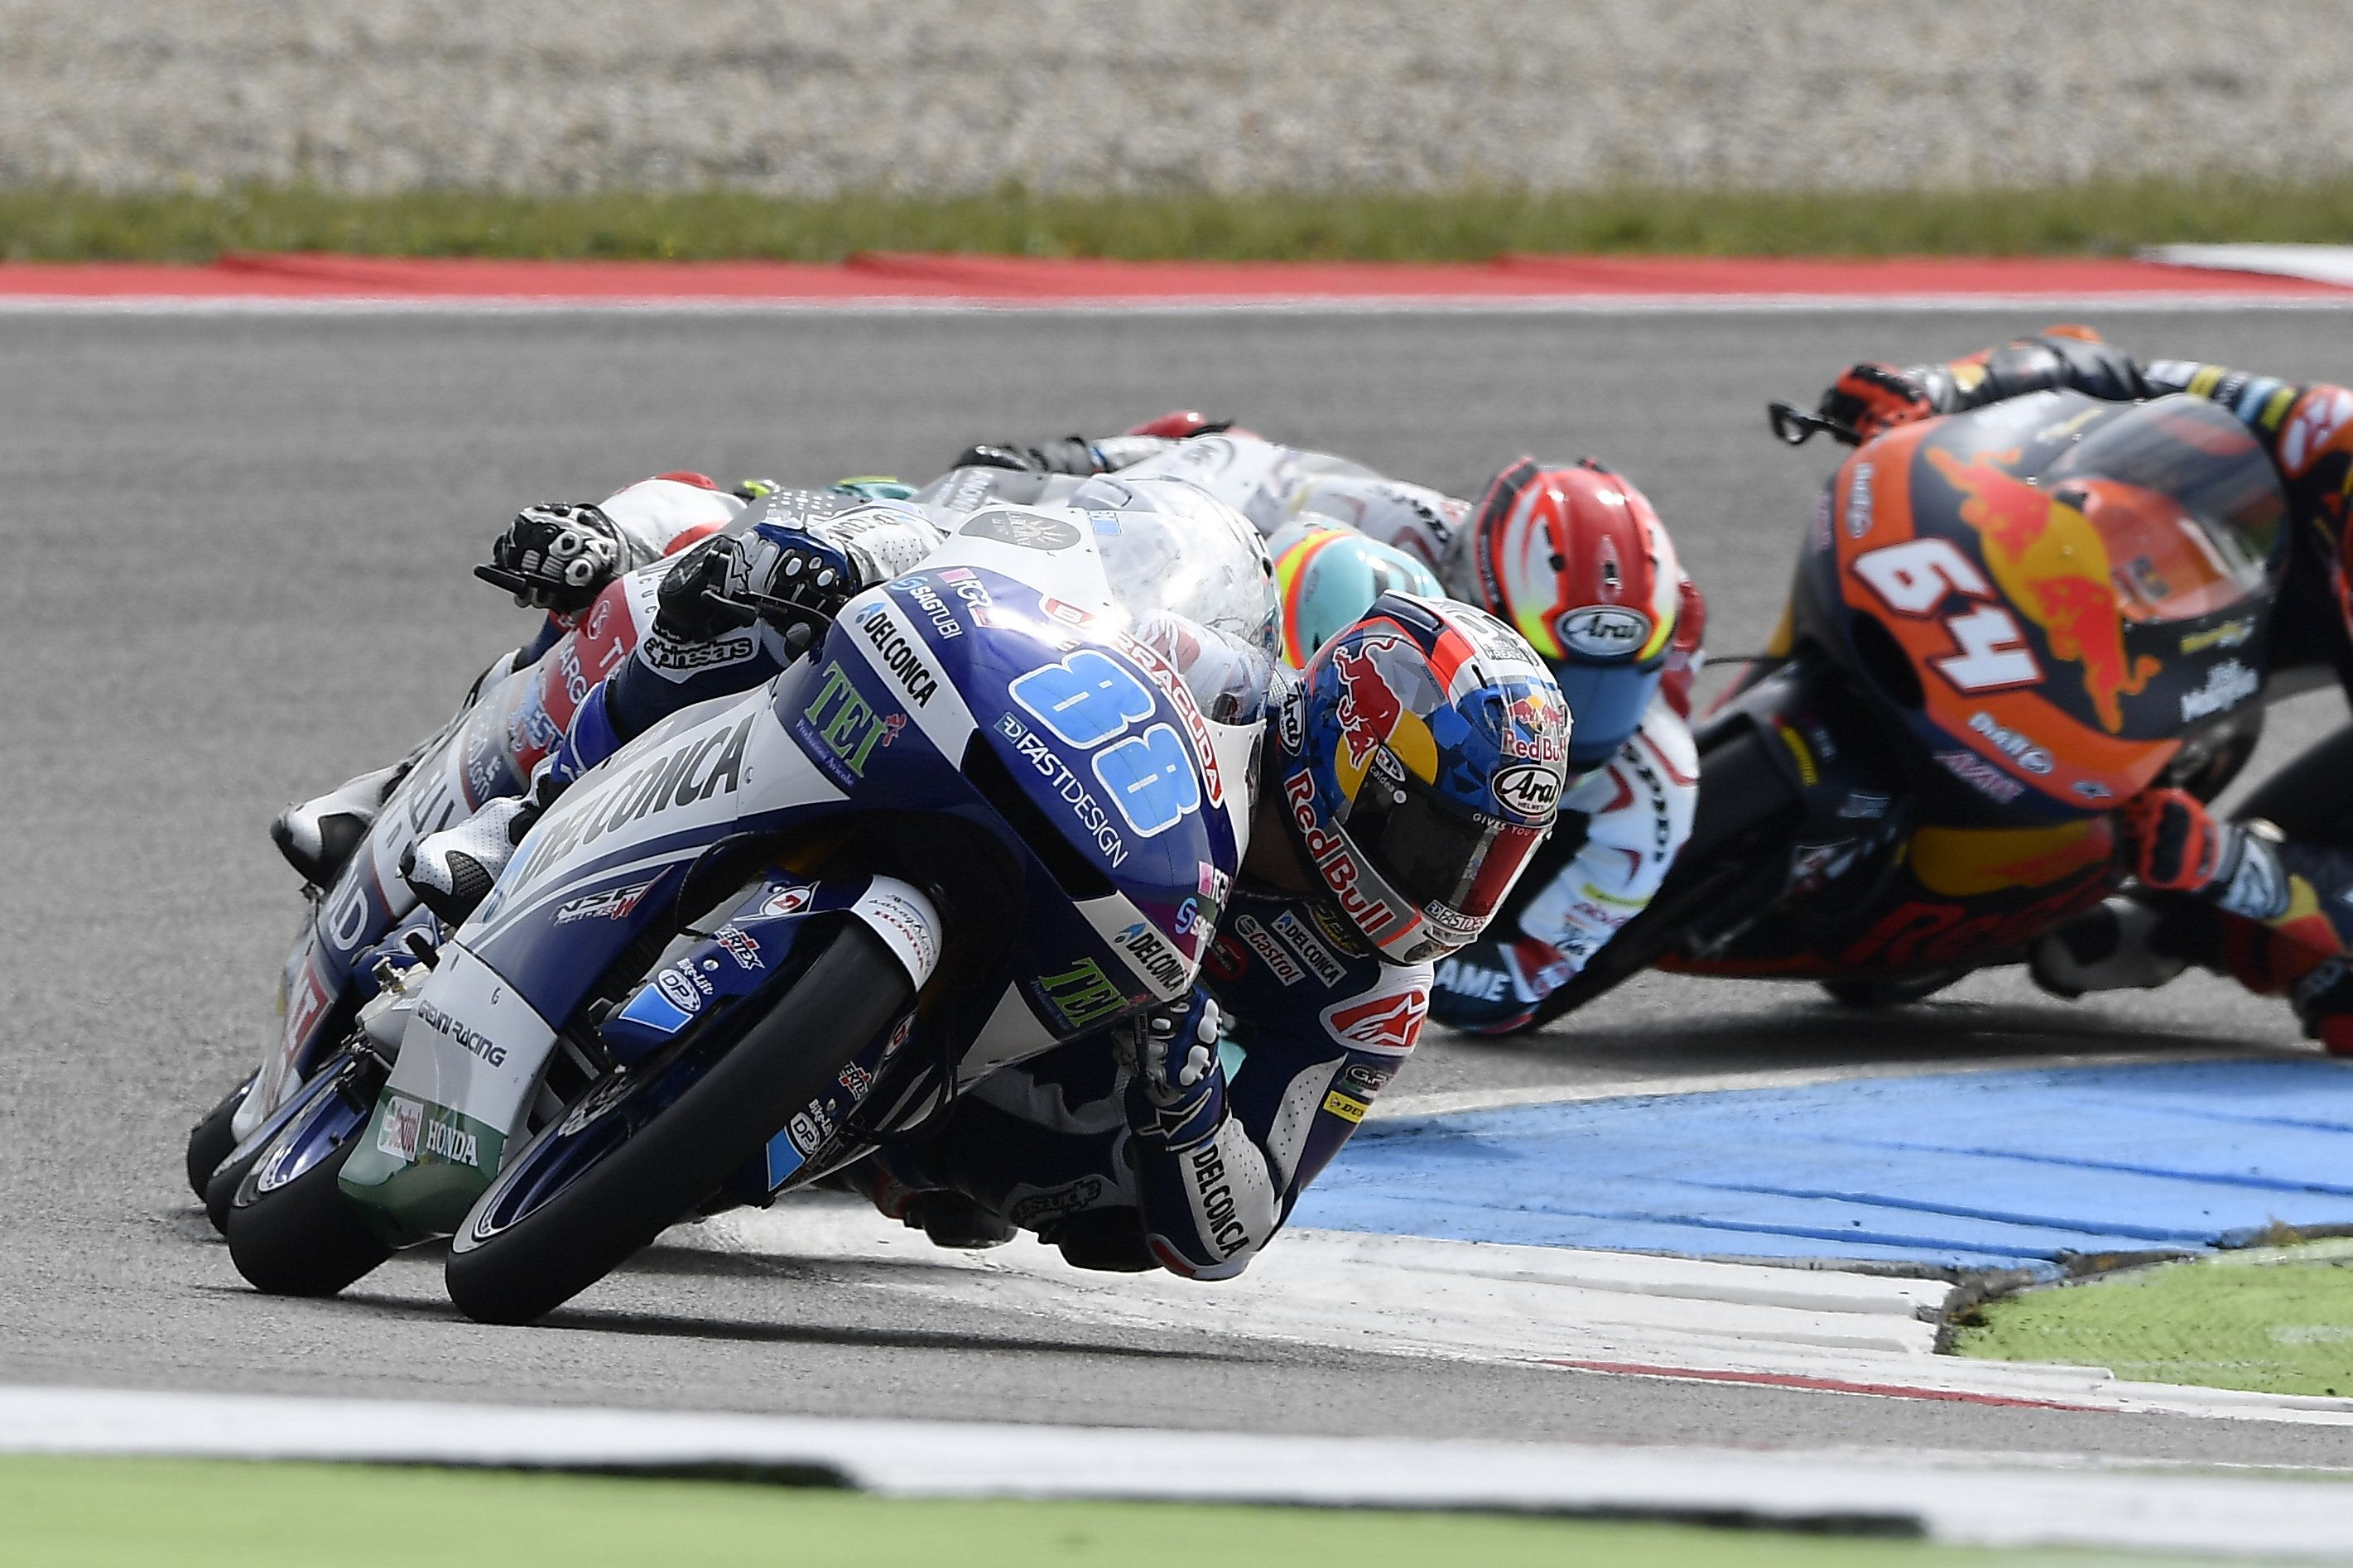 From Vroom Mag... Brave Jorge Martin misses out on Dutch podium by few hundredths of a second